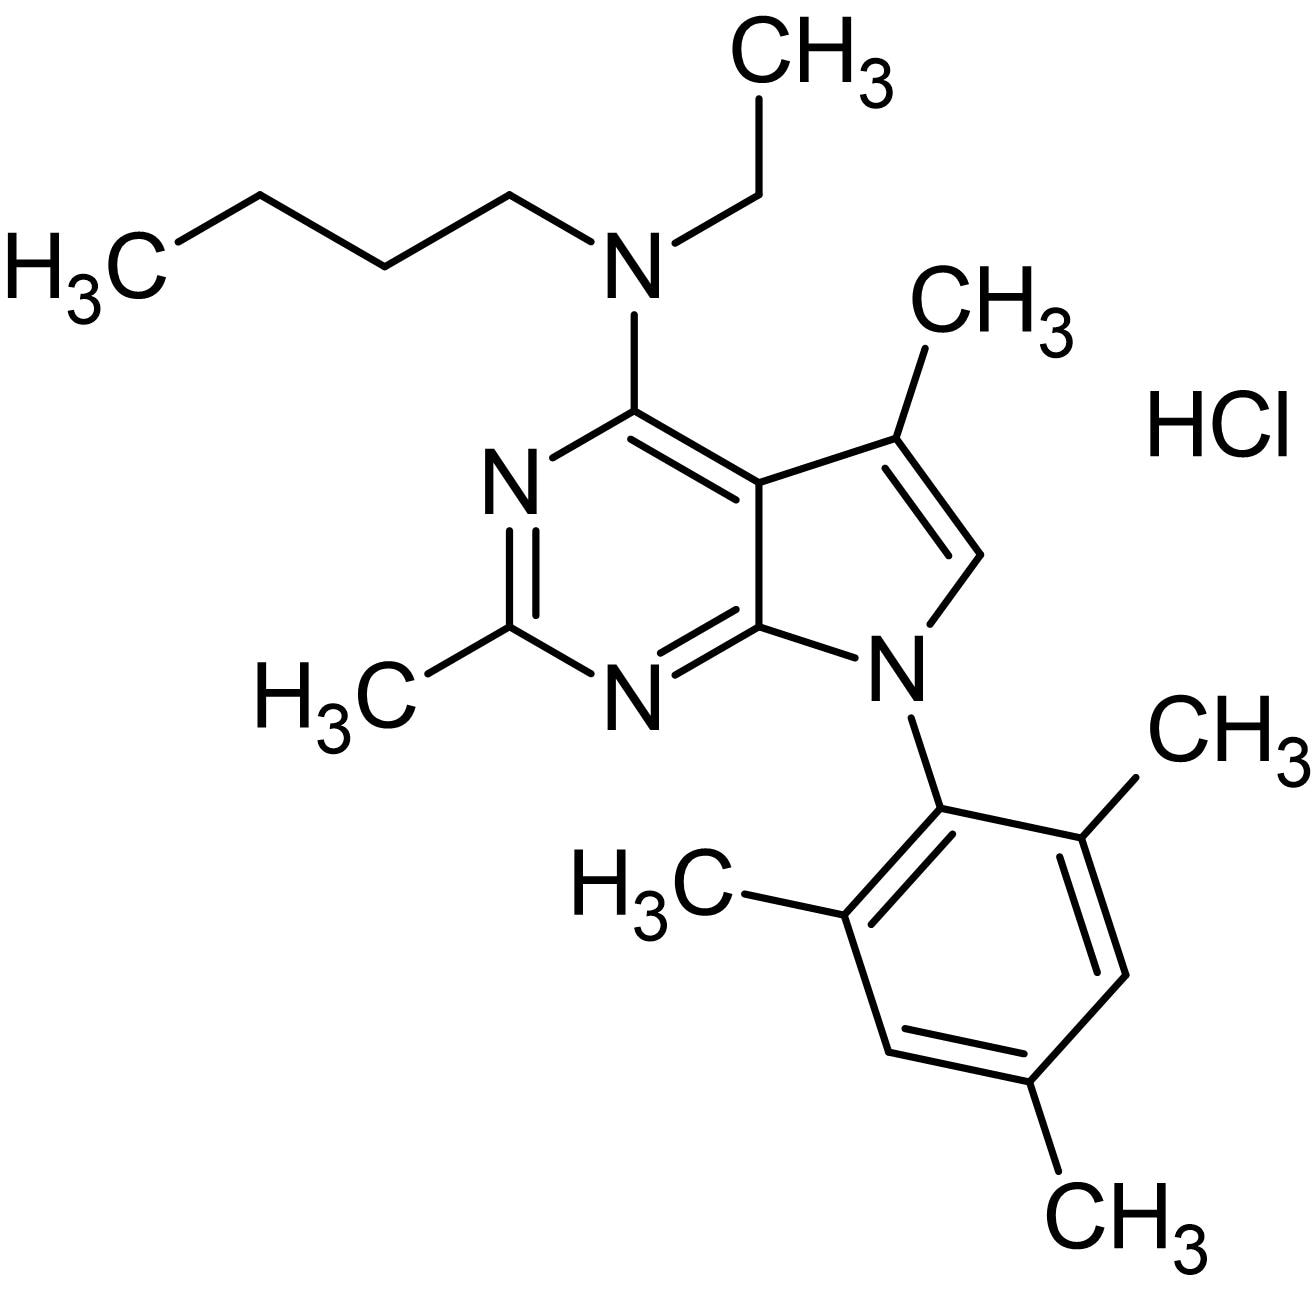 Chemical Structure - CP 154526 hydrochloride, non-peptide CRF1 receptor antagonist (ab141429)